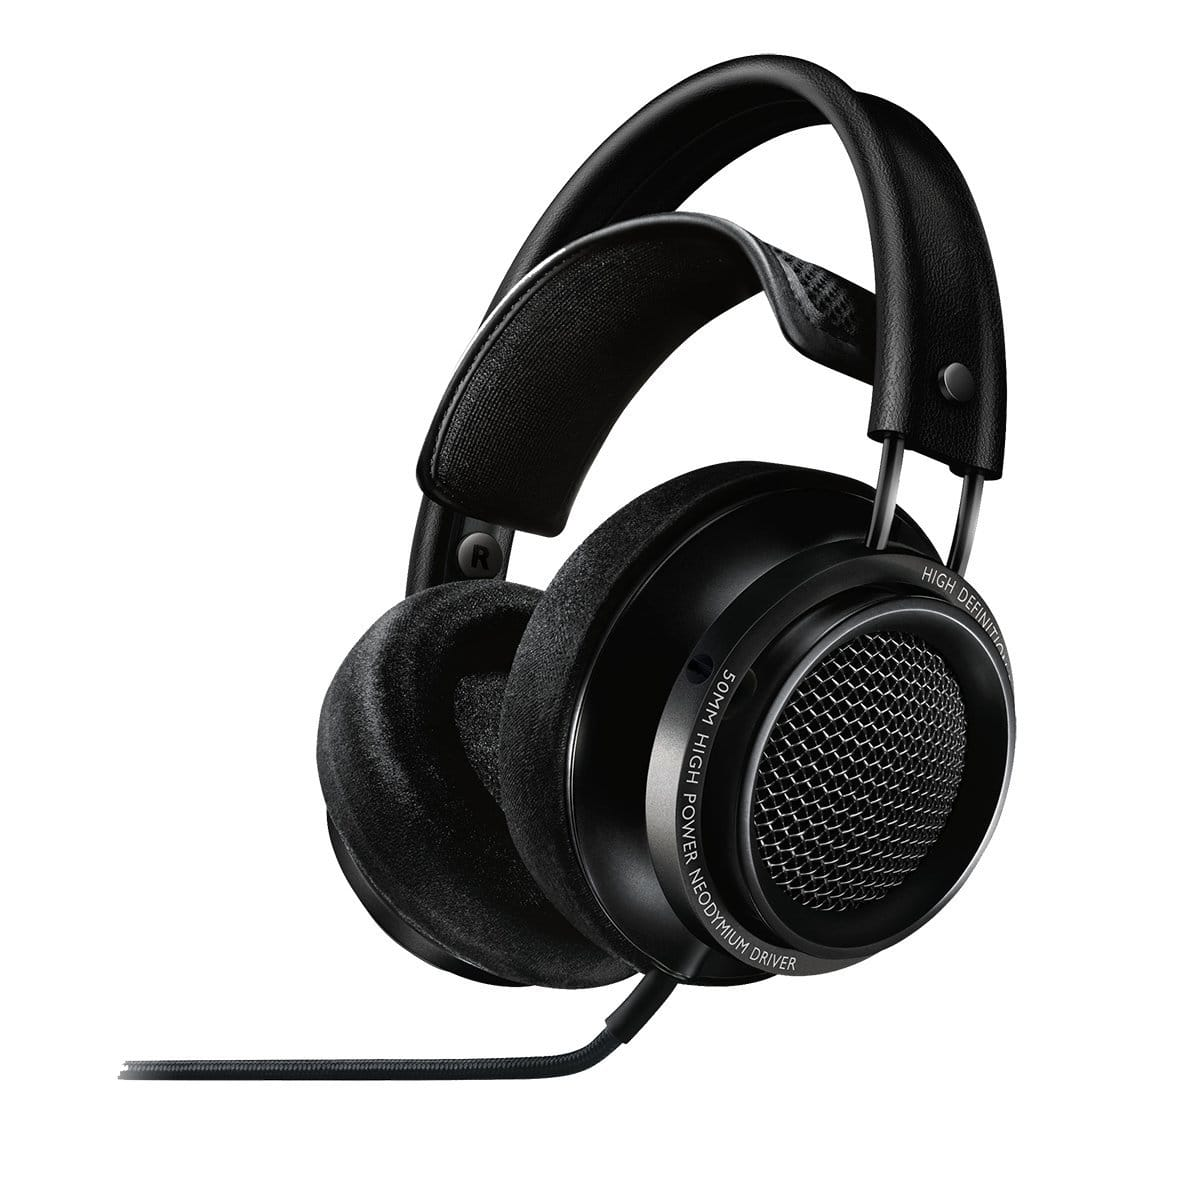 Philips X2/27 Fidelio Premium Headphones, Black for $199.99 at Amazon